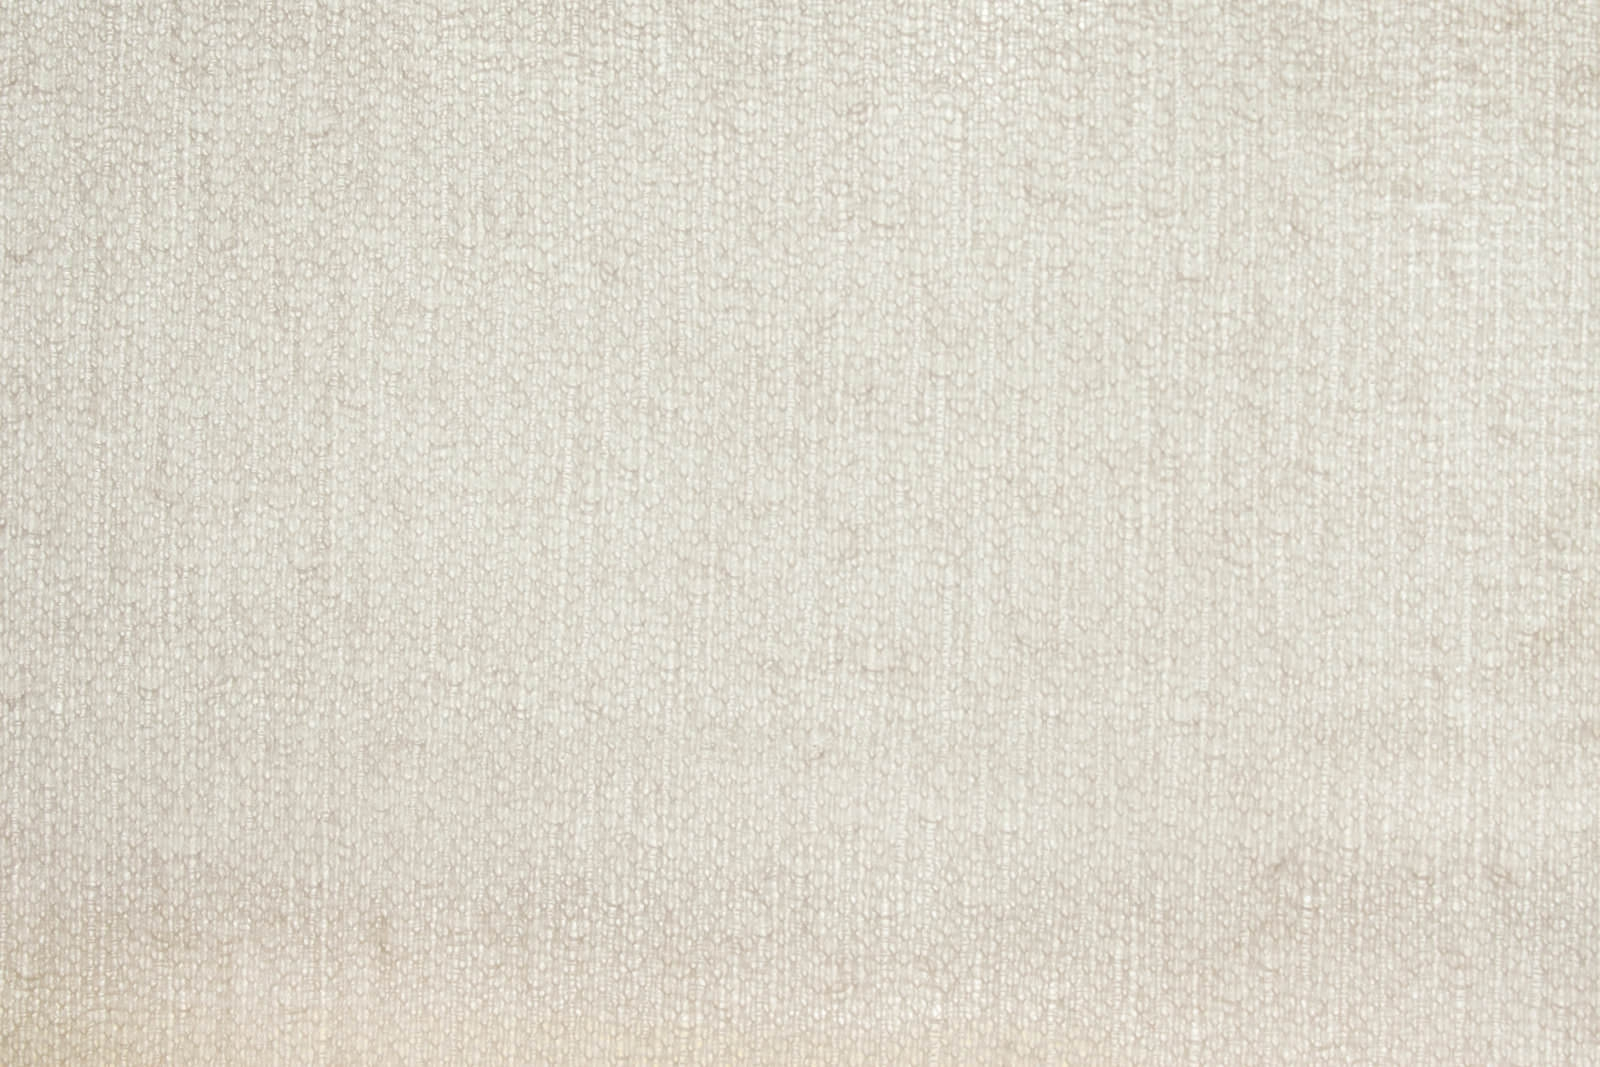 Soft T-shirt Fabric Texture For Free